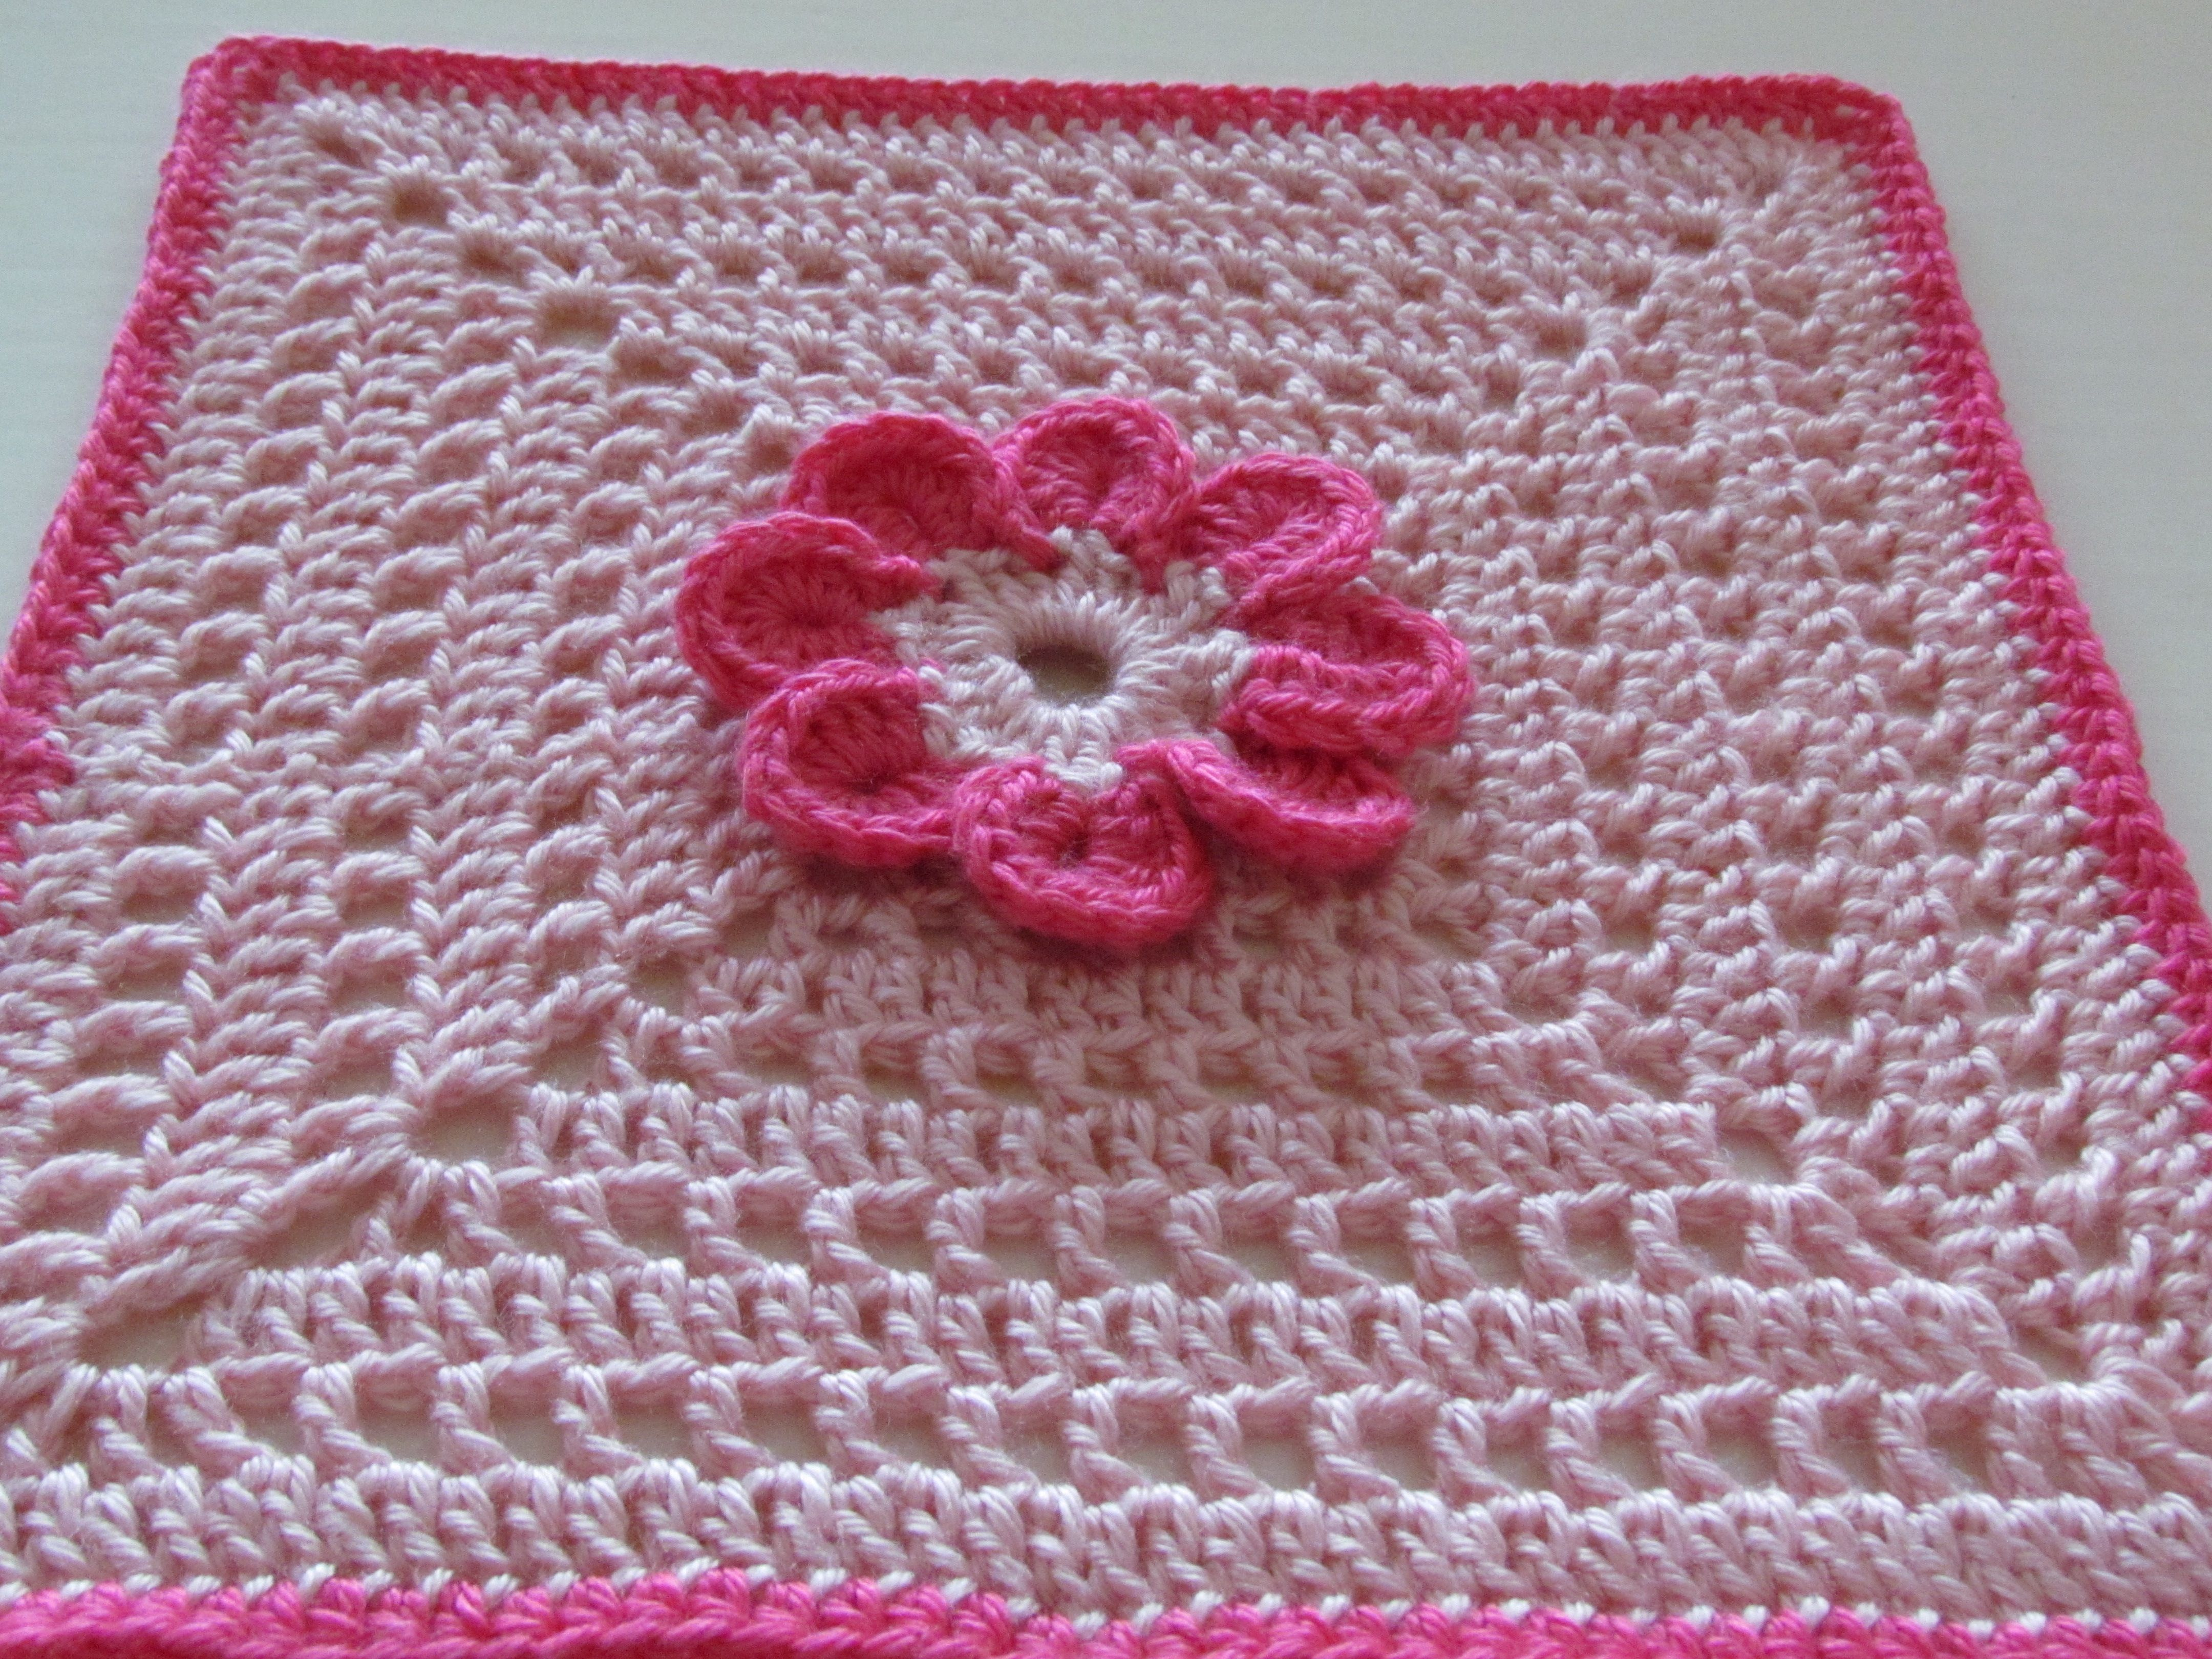 8 petal flower afghan square free crochet pattern crochet 8 petal flower afghan square free crochet pattern bankloansurffo Image collections